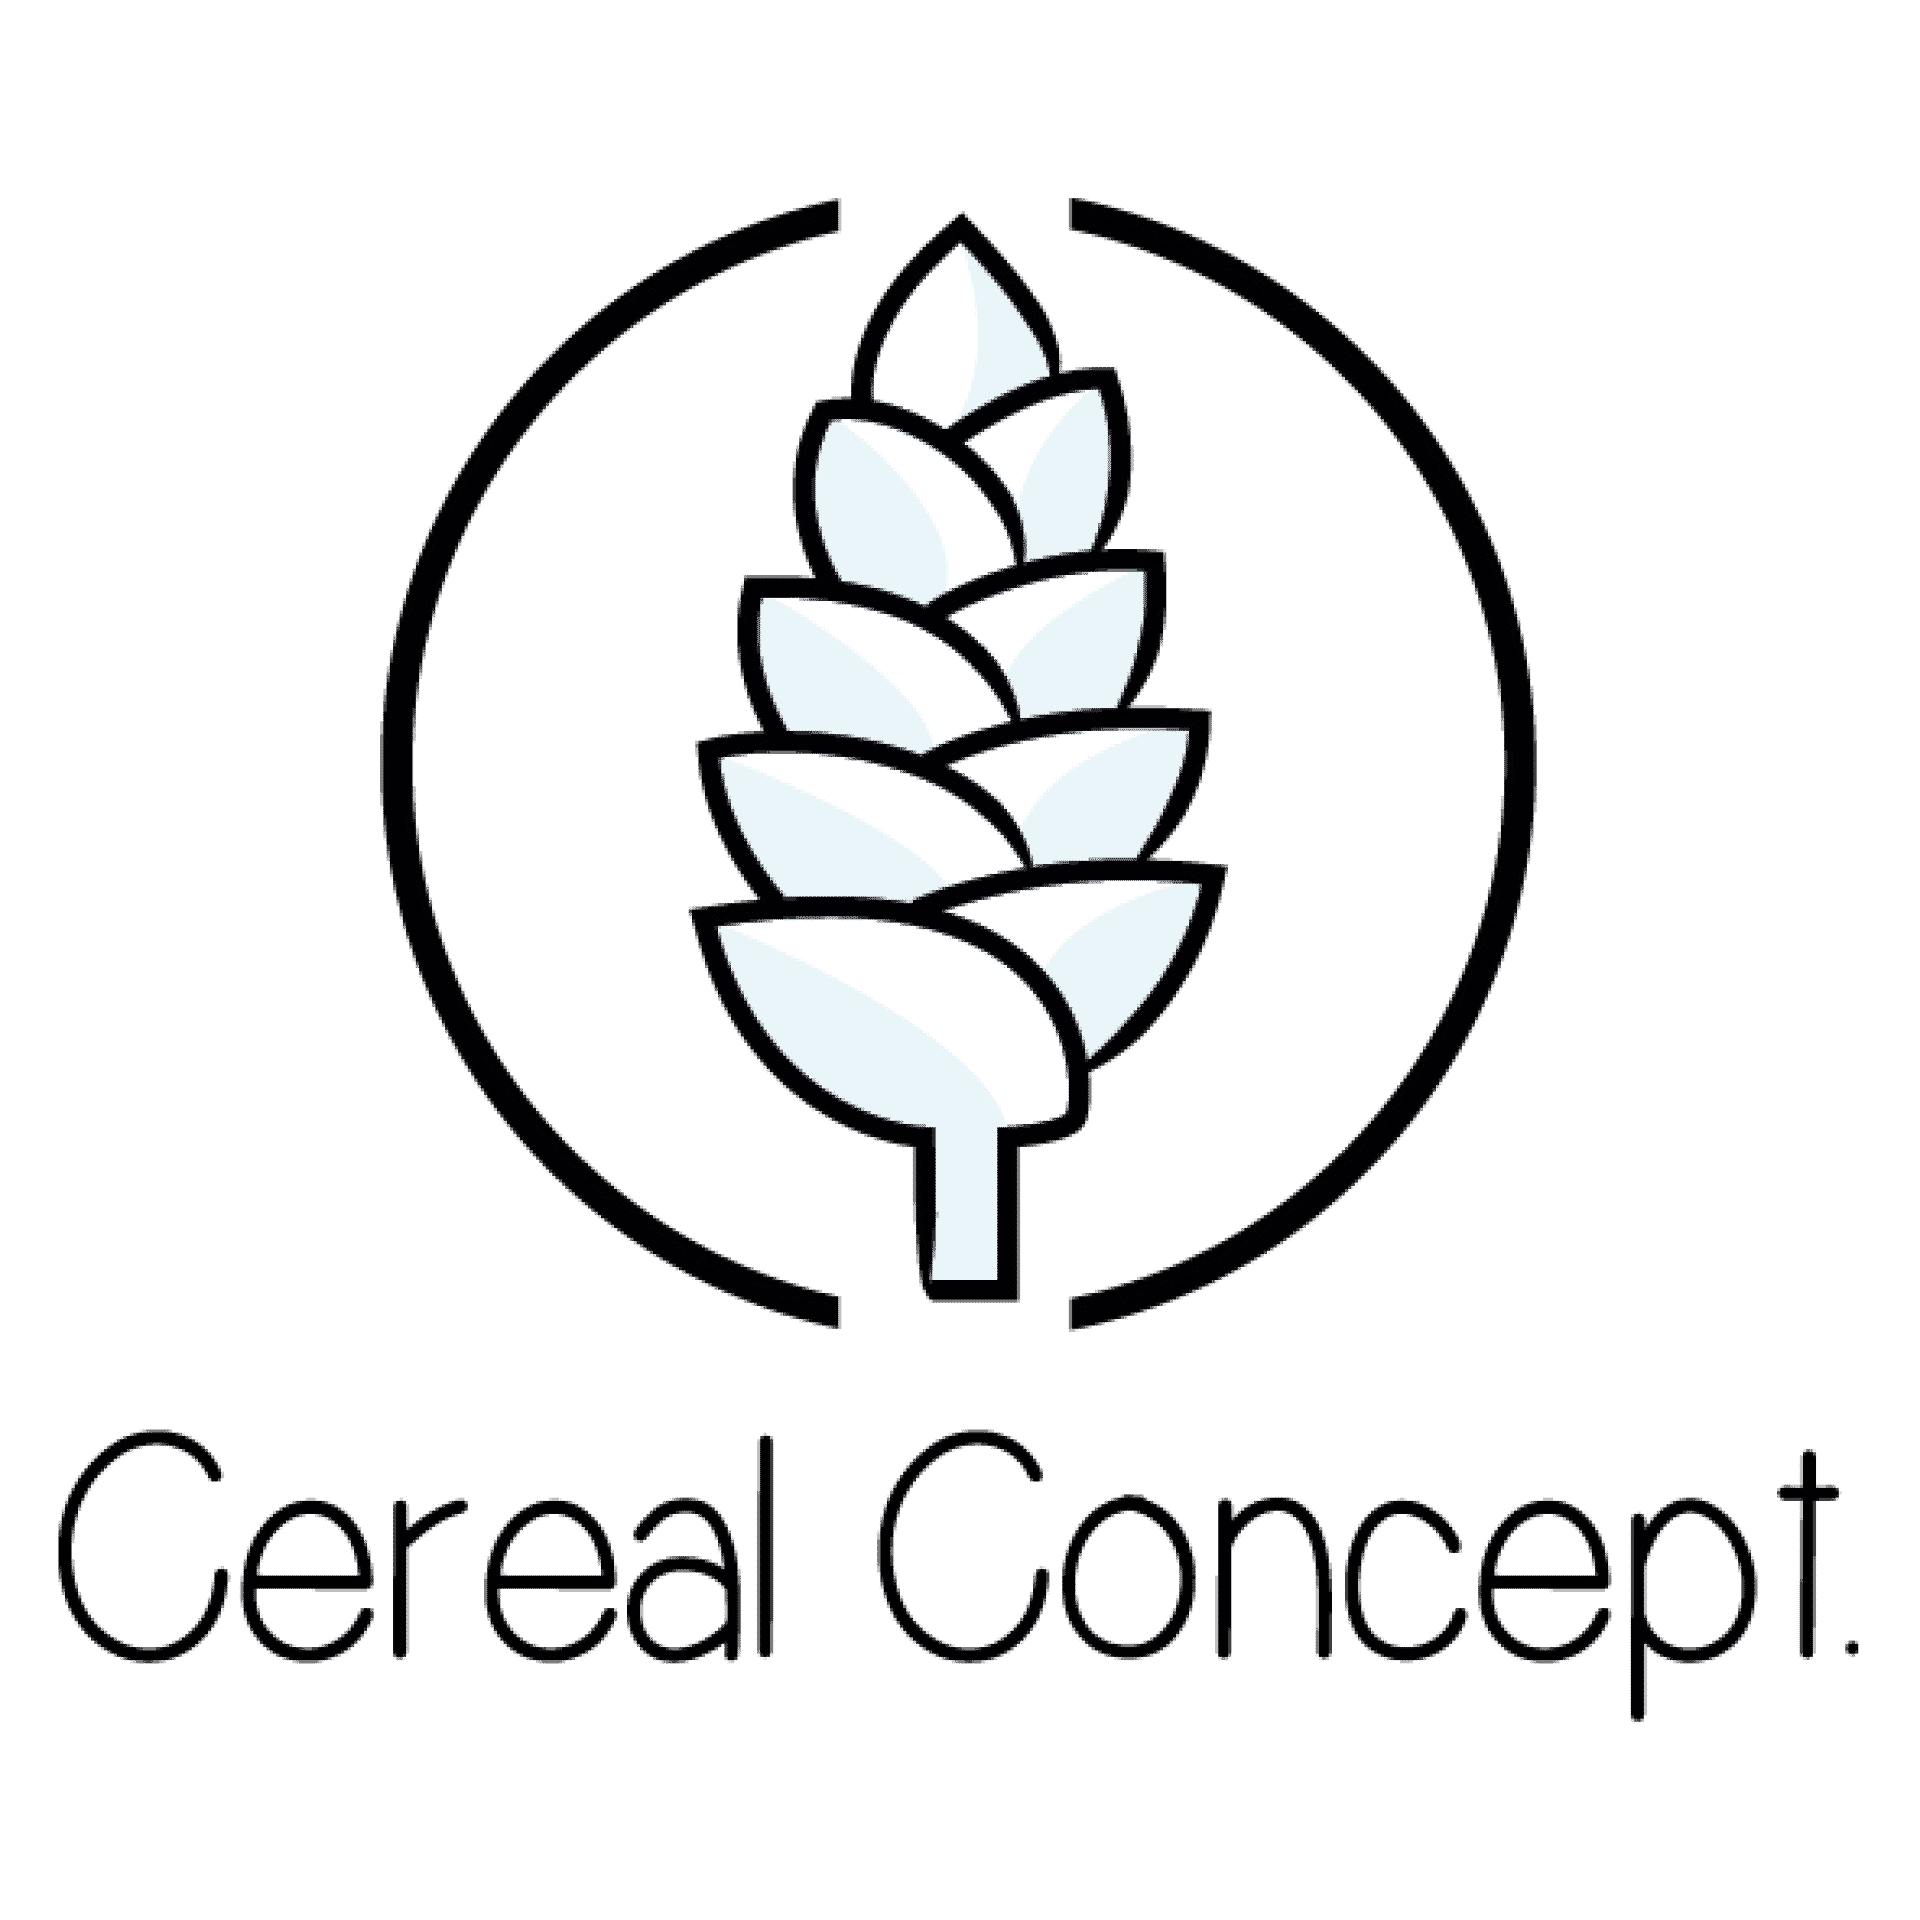 logo cereal concept web design tech & smile applications mobiles